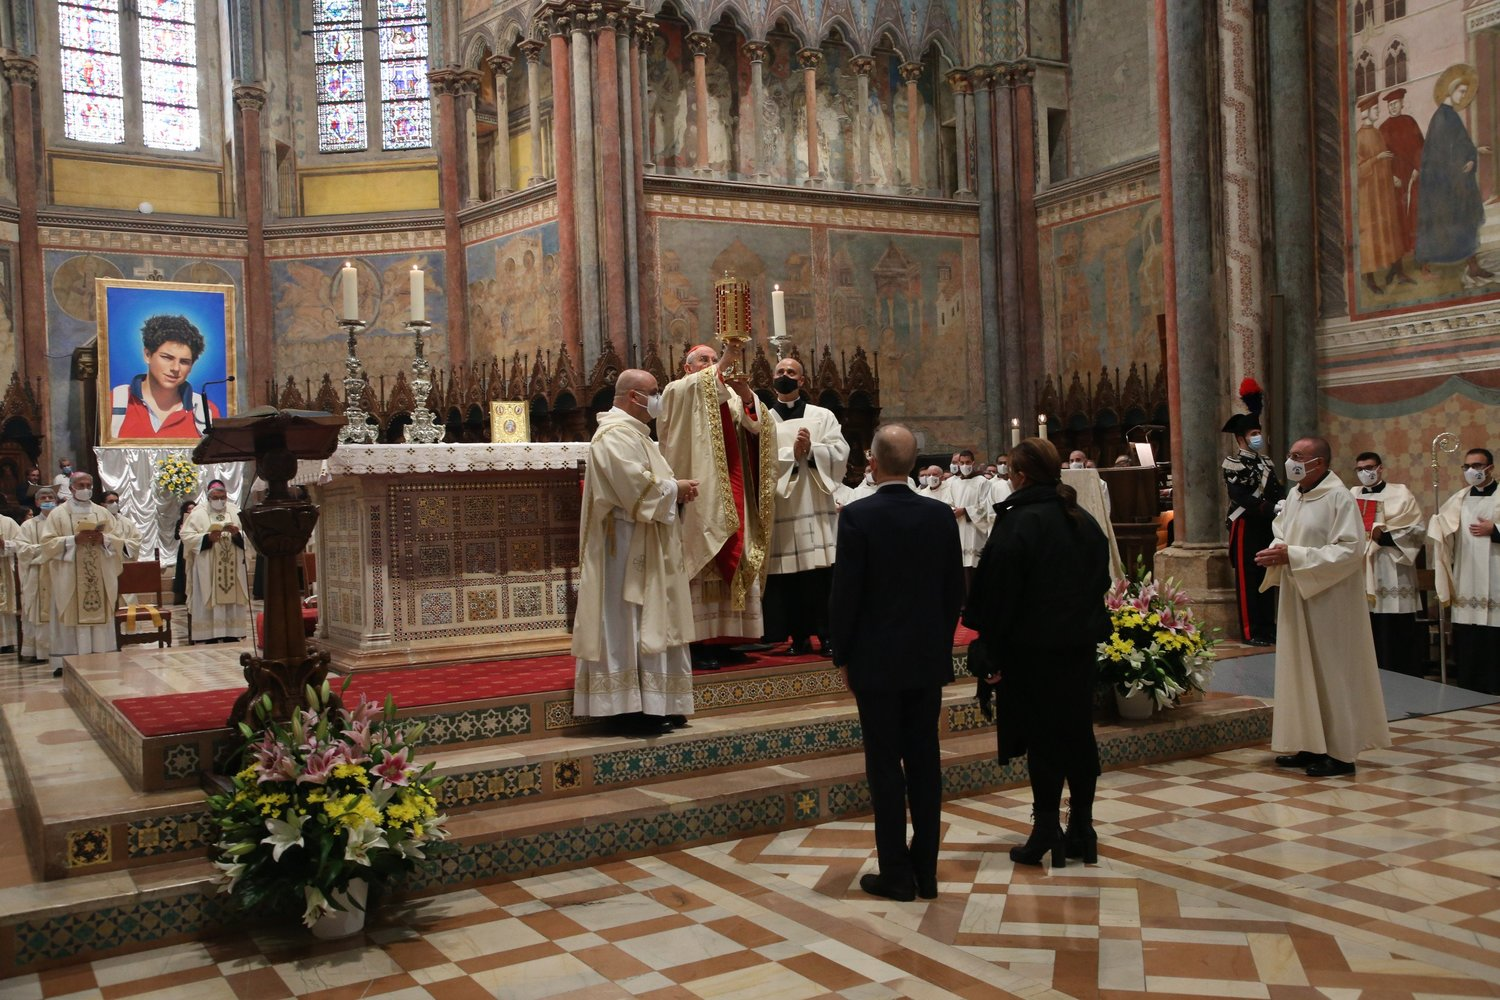 Italian Cardinal Agostino Vallini raises a reliquary containing the heart of Carlo Acutis during his beatification Mass in the Basilica of St. Francis in Assisi in Assisi, Italy, Oct. 10. The reliquary was presented by the beatified teen's parents, Andrea Acutis and Antonia Salzano, pictured standing in front of the altar.